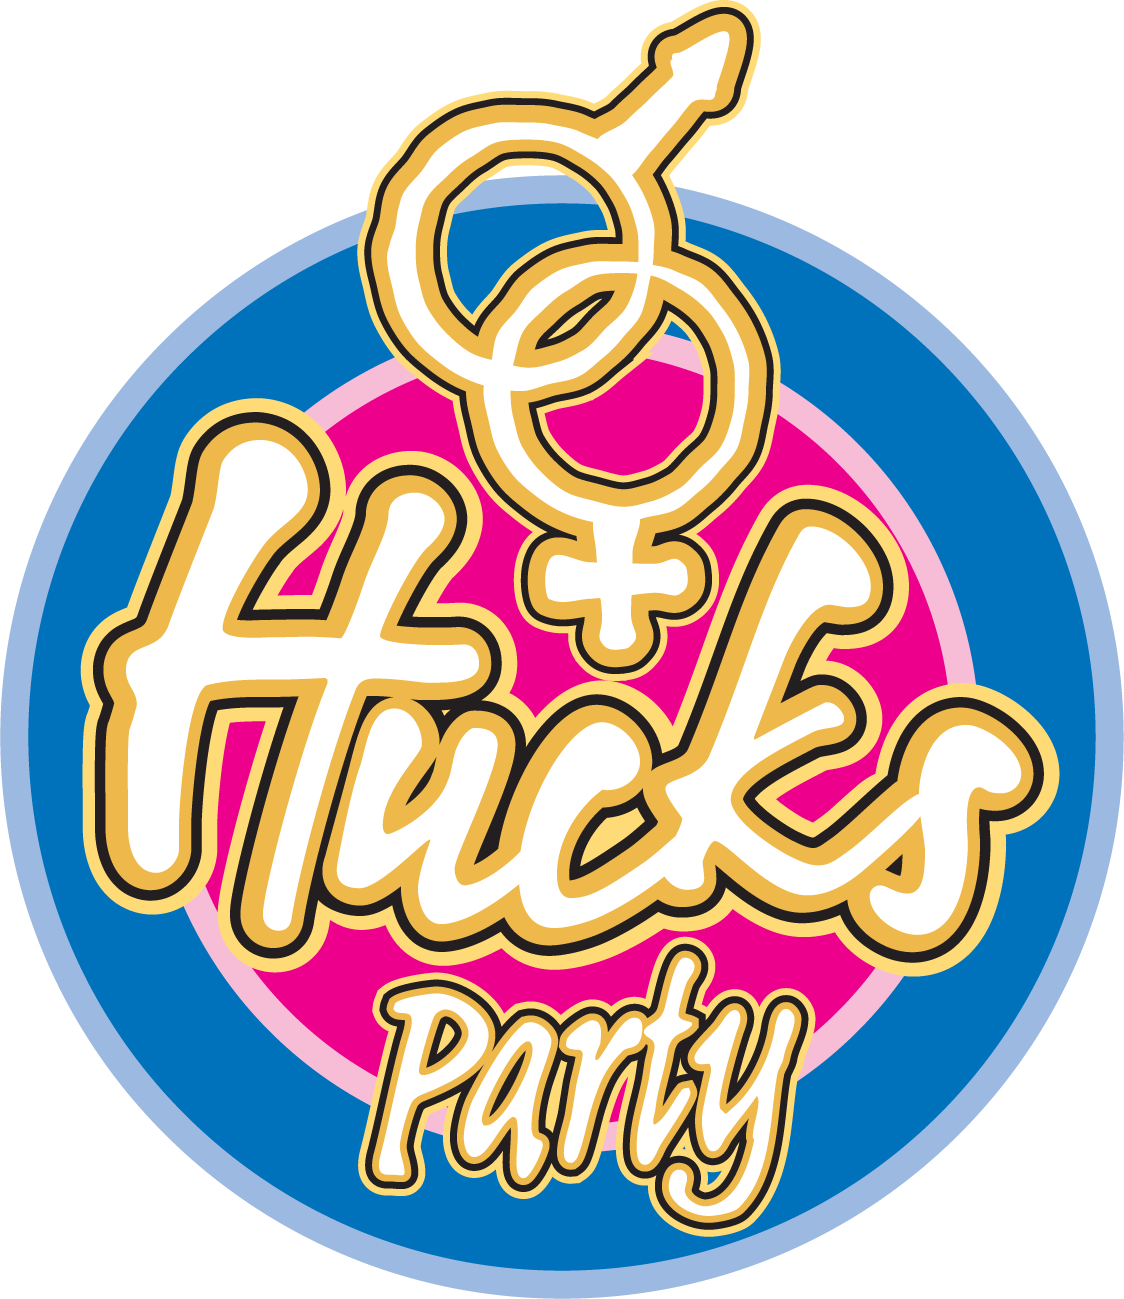 Hucks Party Brisbane - Combined Hens and Bucks Party Nightcruiser Party Tours Brisbane, Qld